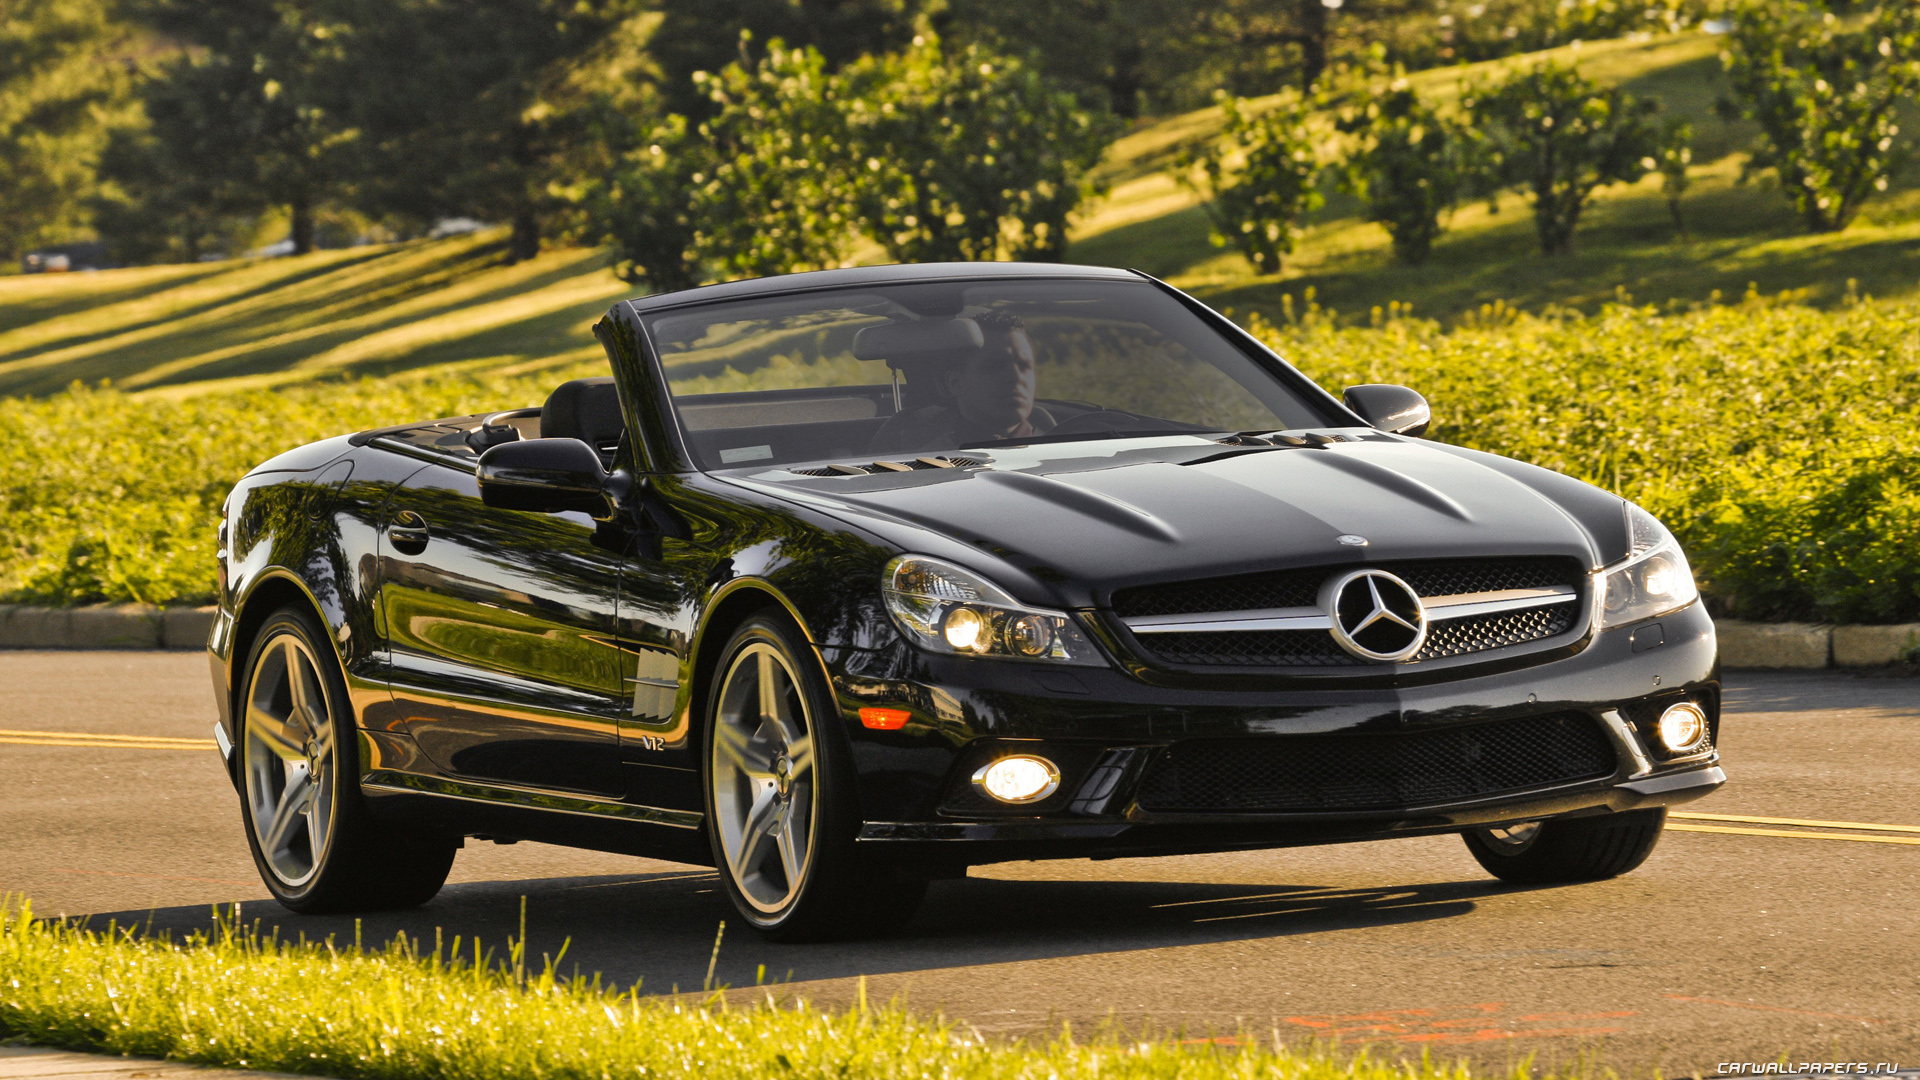 mercedes benz usa 95 car hd wallpaper. Cars Review. Best American Auto & Cars Review